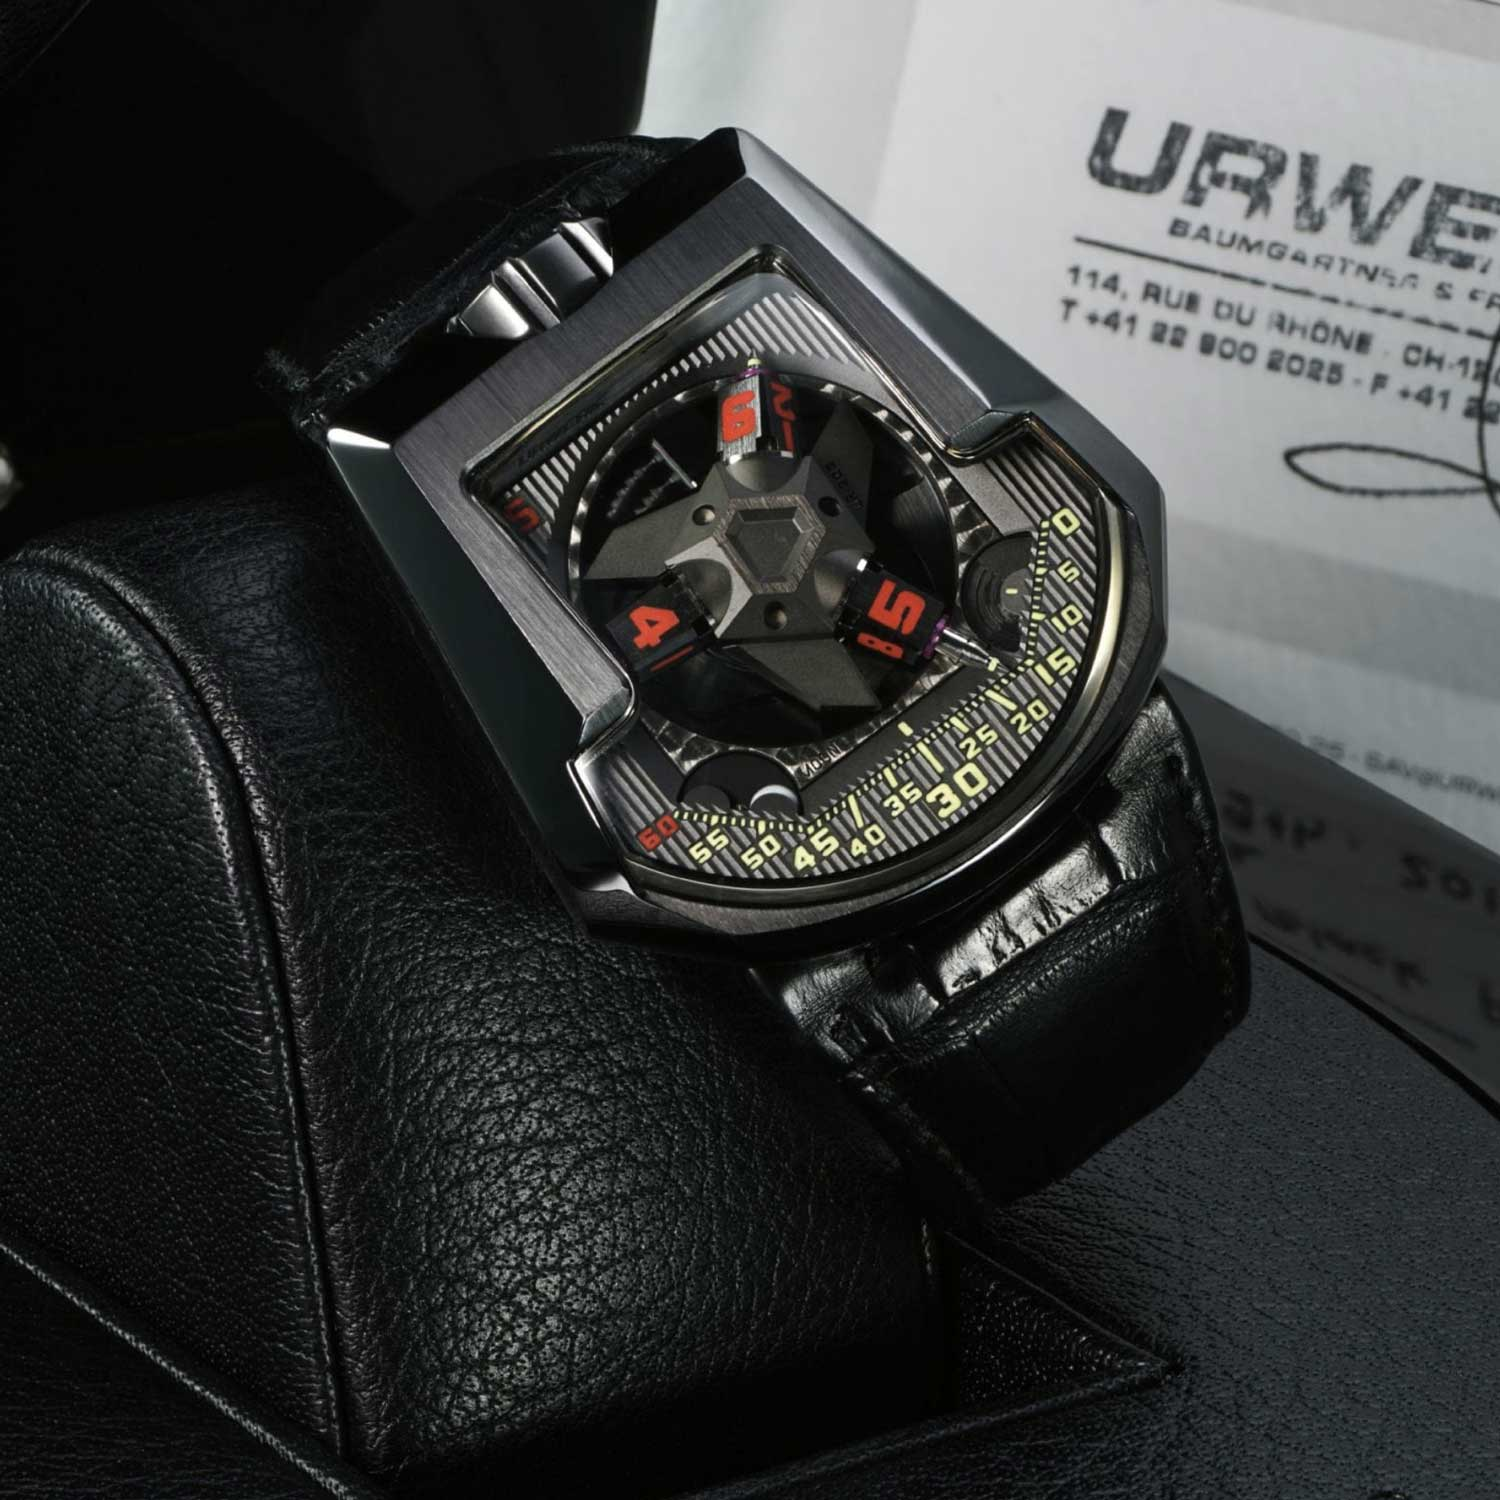 An exceptional execution of the UR-203 Black PT